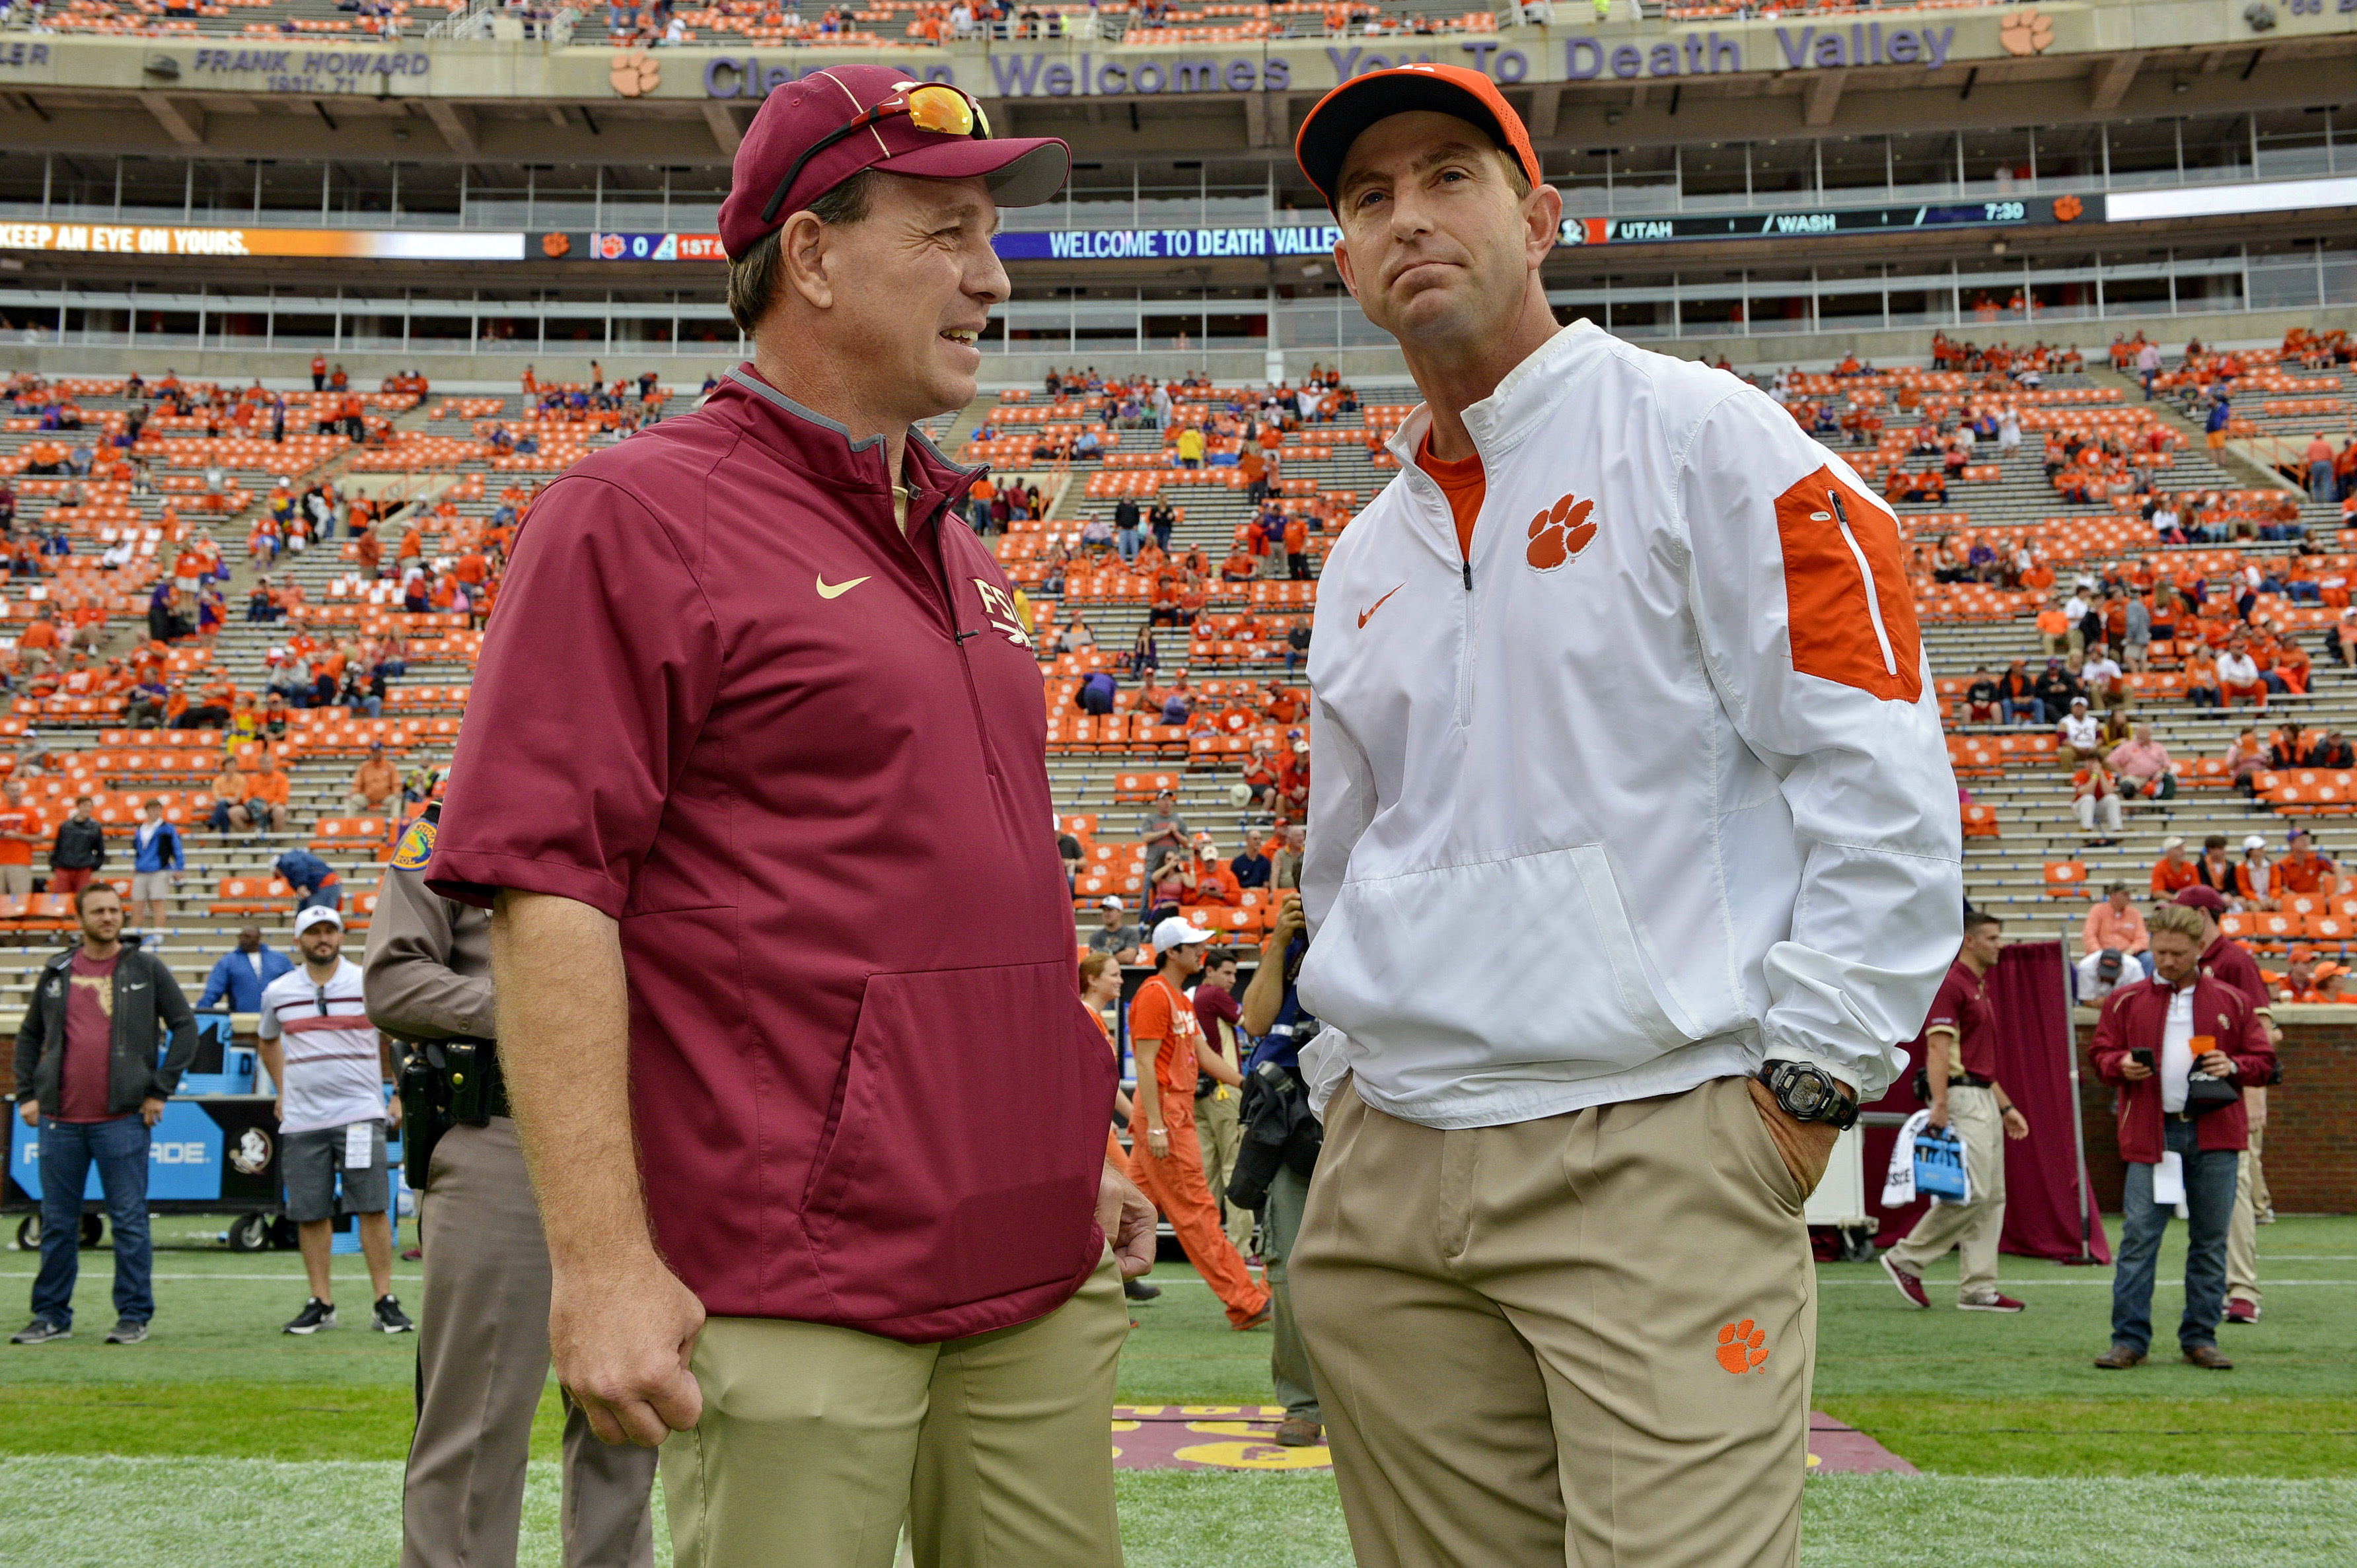 FILE - In this Nov. 7, 2015, file photo, Florida State head coach Jimbo Fisher, left, and Clemson head coach Dabo Swinney talk before the start of an NCAA college football game in Clemson, S.C. Another Clemson-Florida State matchup in the Top 25, another